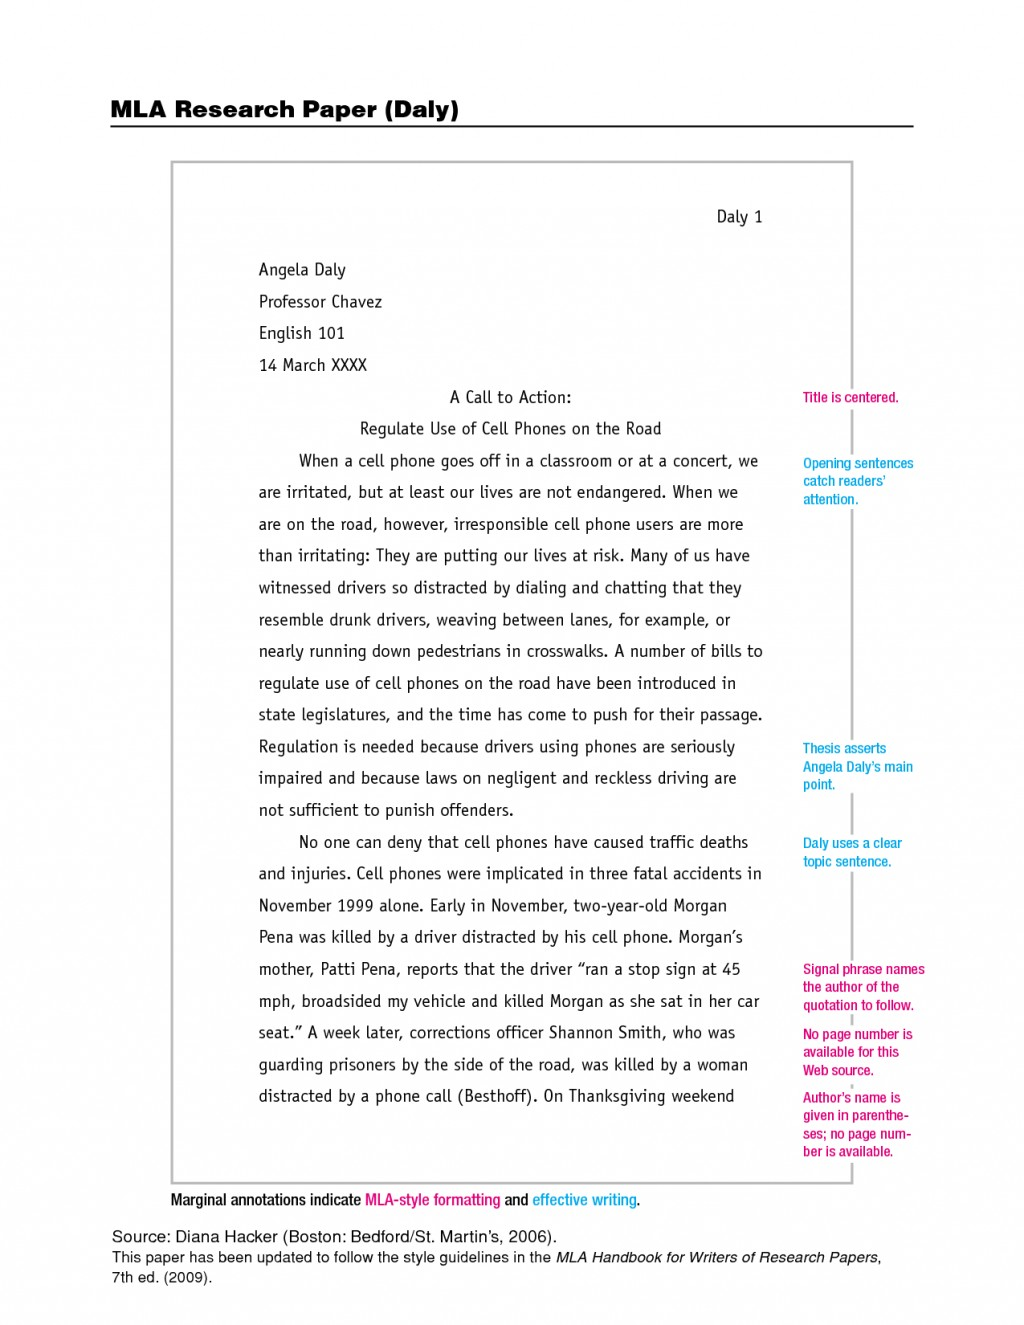 009 Research Paper Format Of Astounding A Introduction Example Using Apa Style Mla With Title Page Large